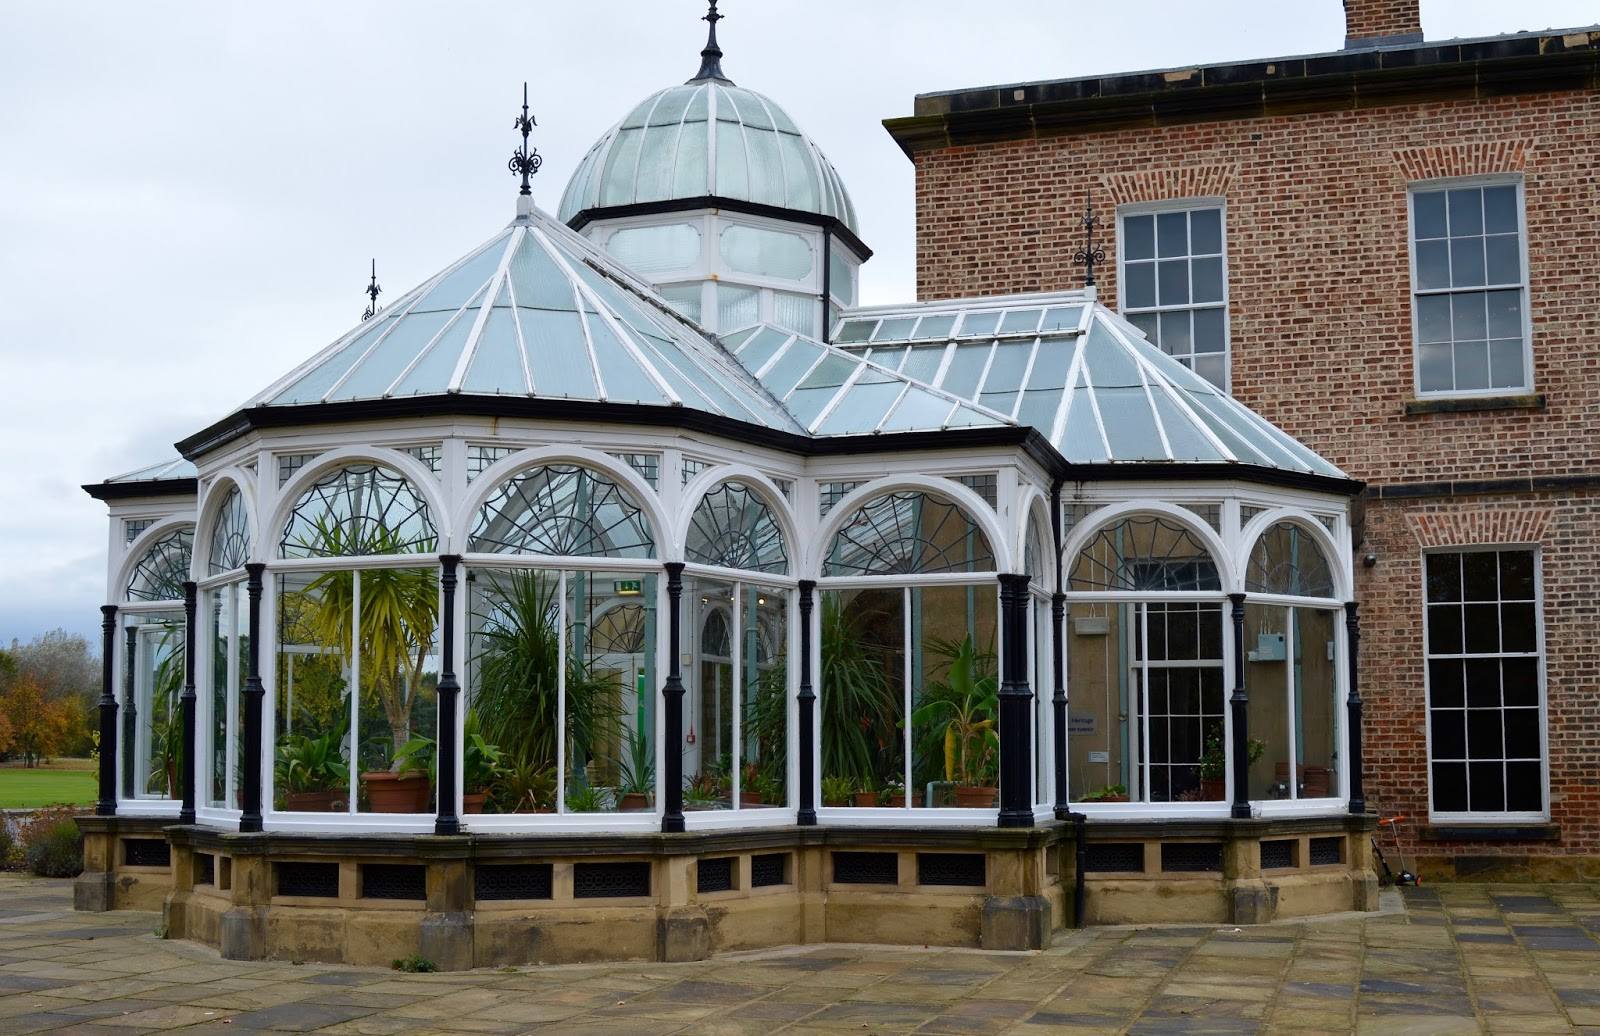 Half Term Hocus Pocus at Preston Park | The North East's very own Diagon Alley - conservatory restaurant